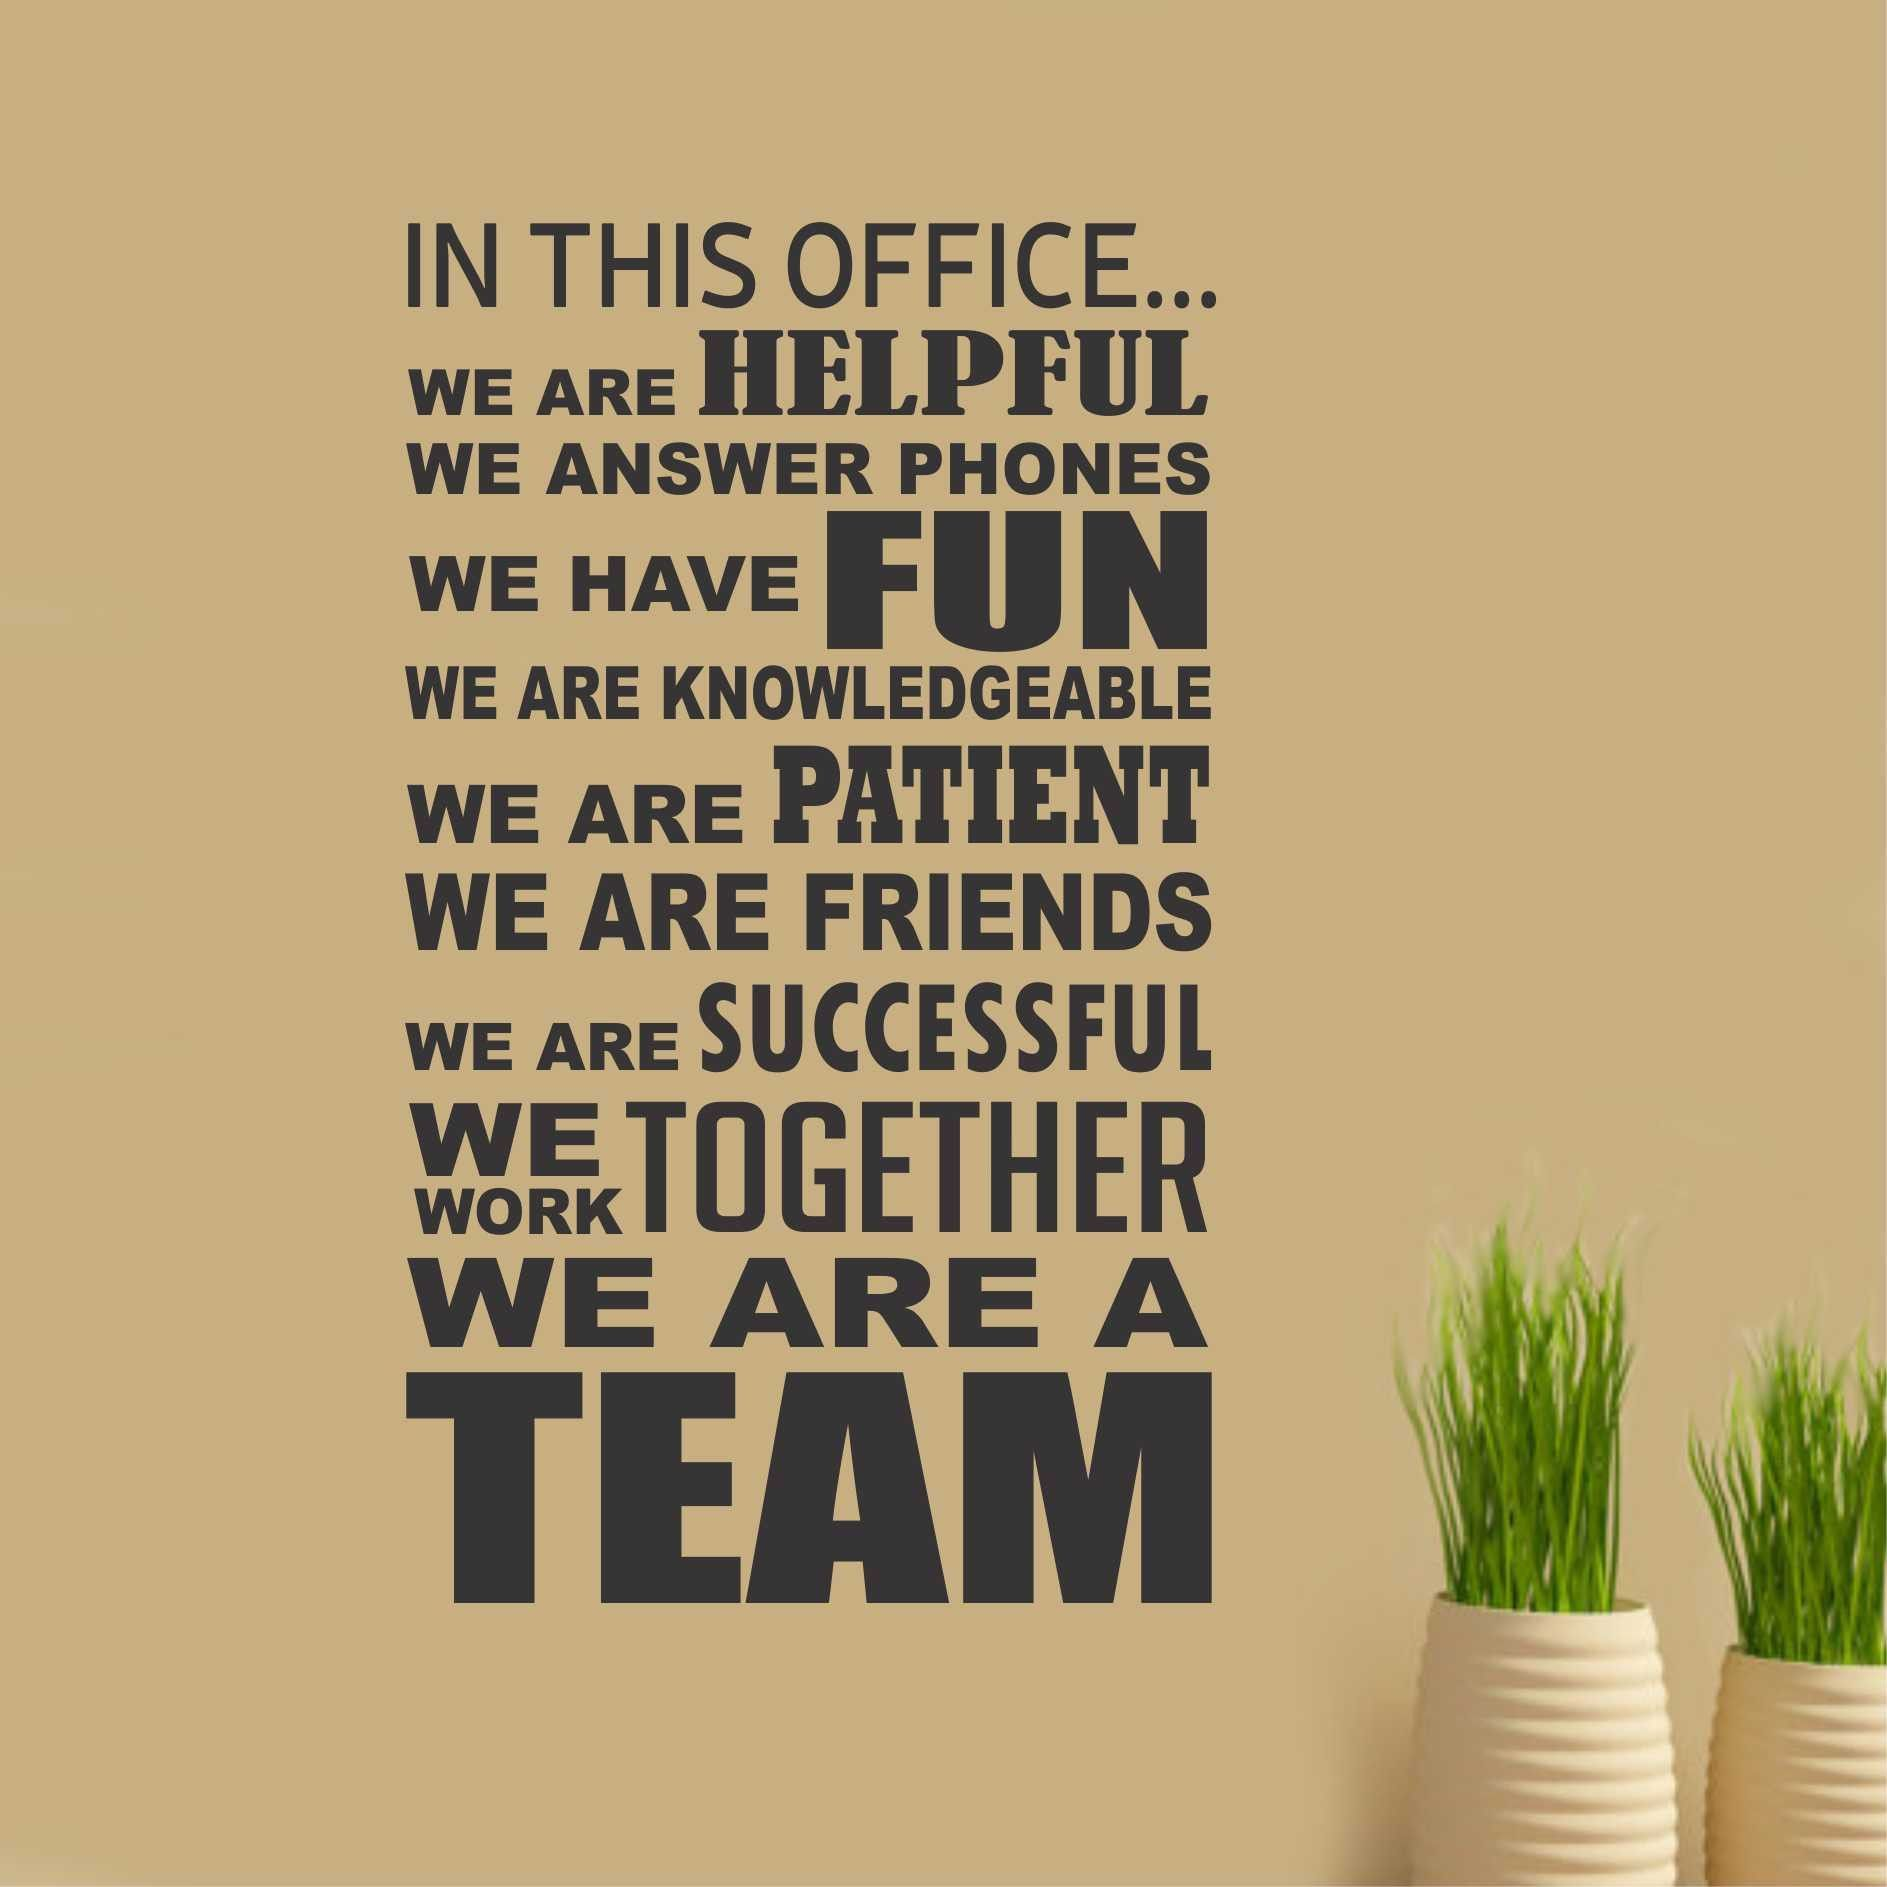 in this office team